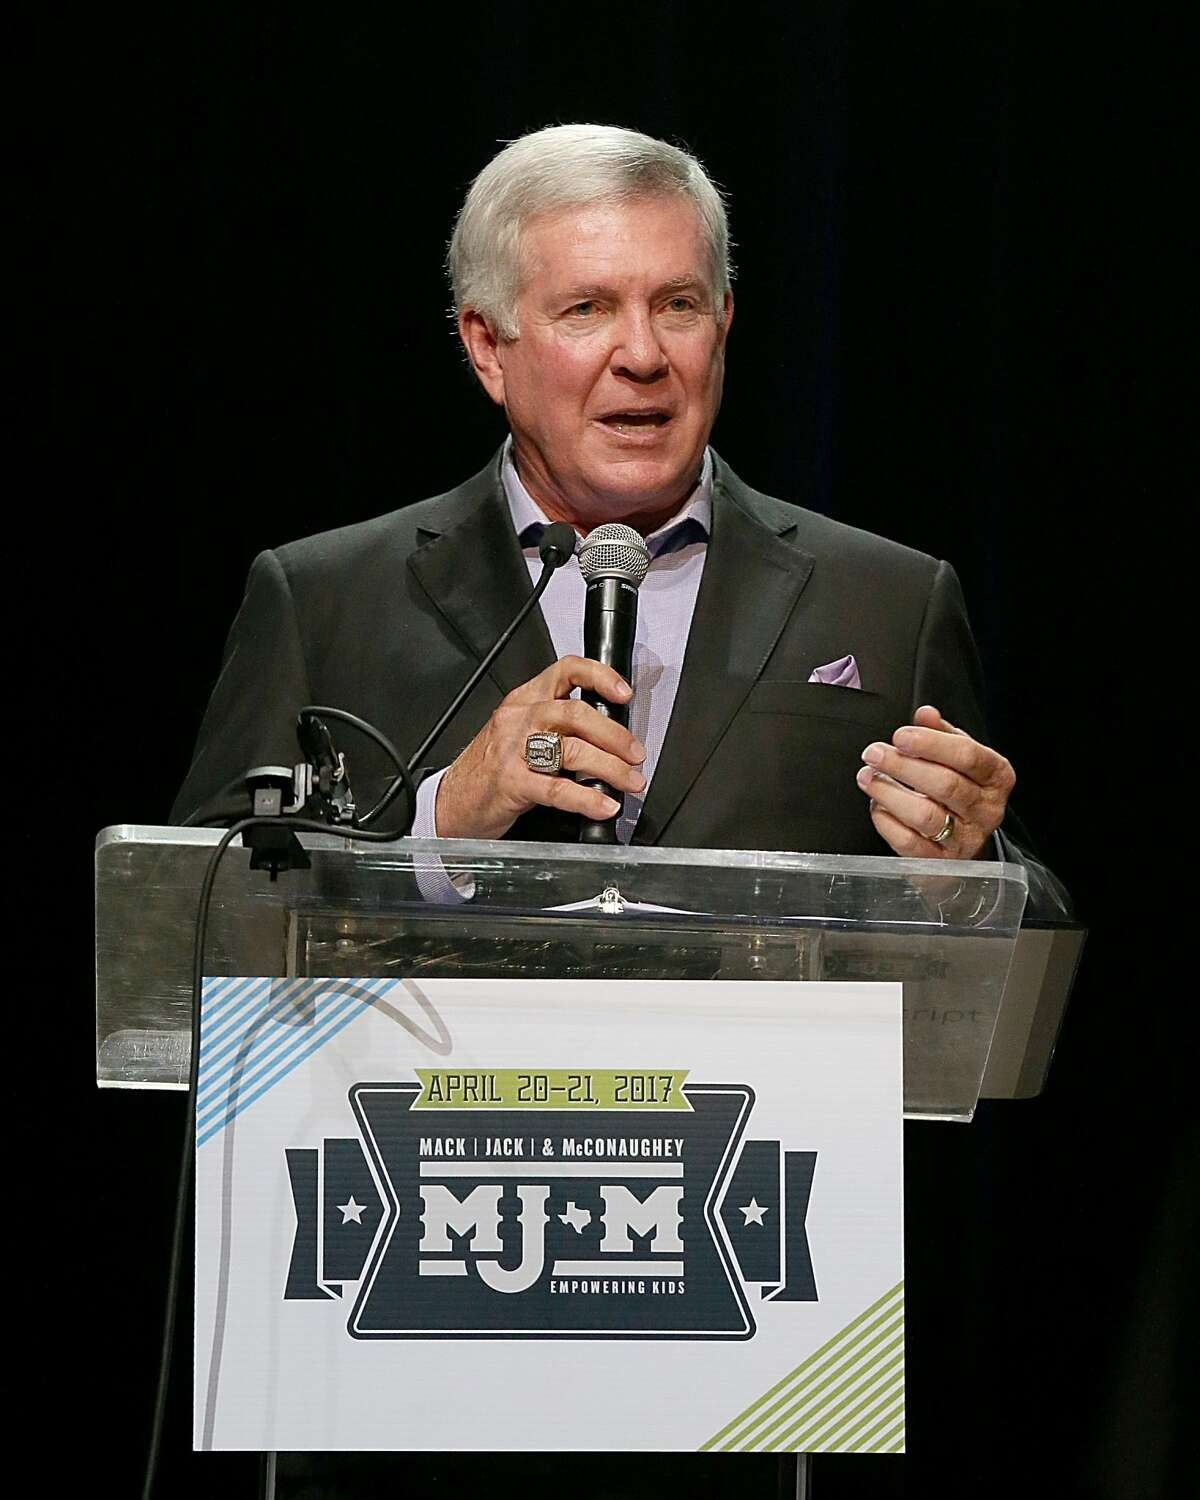 Mack Brown attends the Mack, Jack & McConaughey Gala benefit at ACL-Live on April 20, 2017 in Austin, Texas.